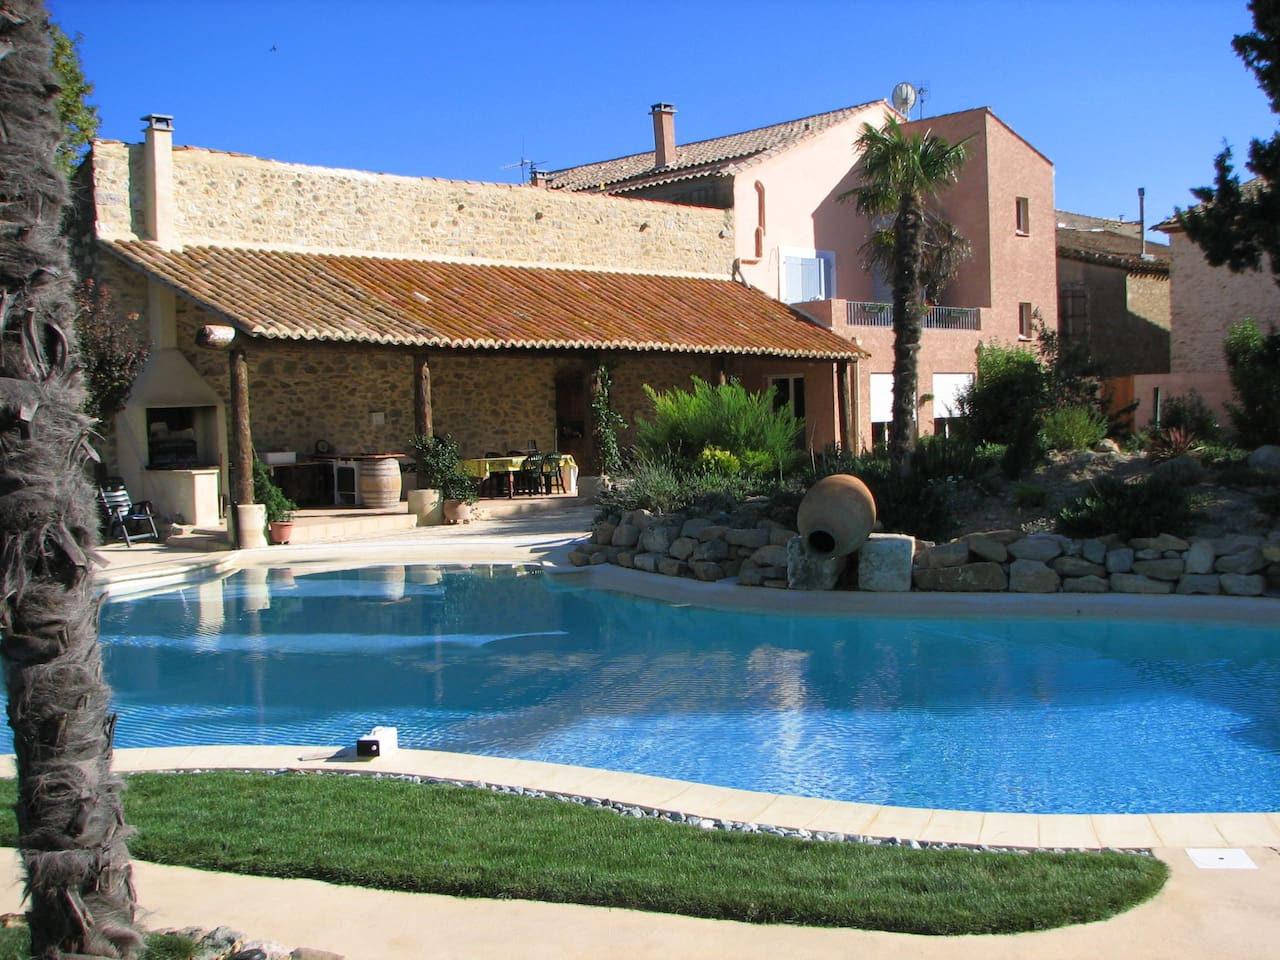 Le coq du nord - Pool and covered terrace